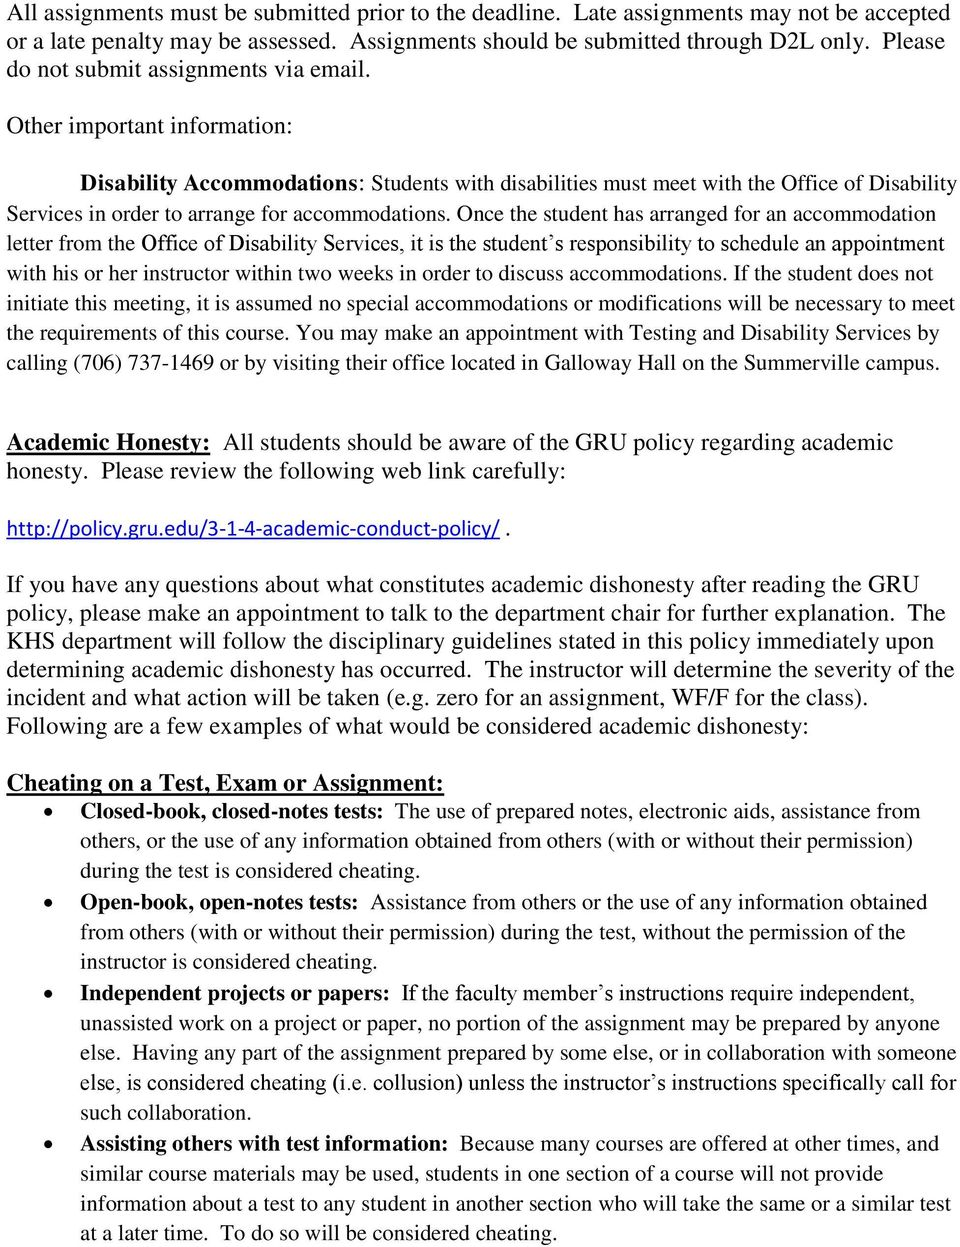 Other important information: Disability Accommodations: Students with disabilities must meet with the Office of Disability Services in order to arrange for accommodations.